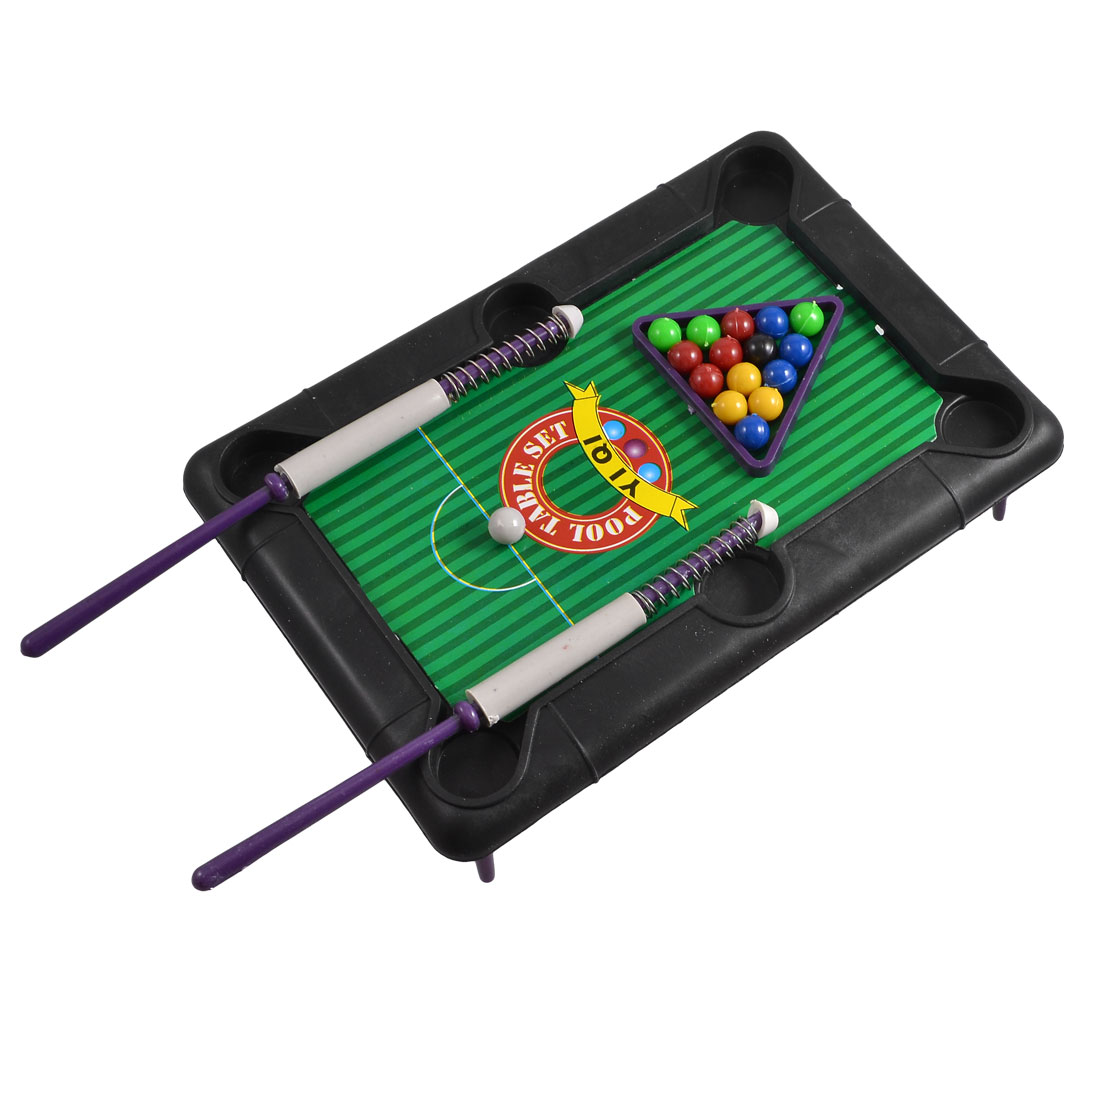 Stretchy Handle Black Board Snooker Billiards Pool Table Set for Kids